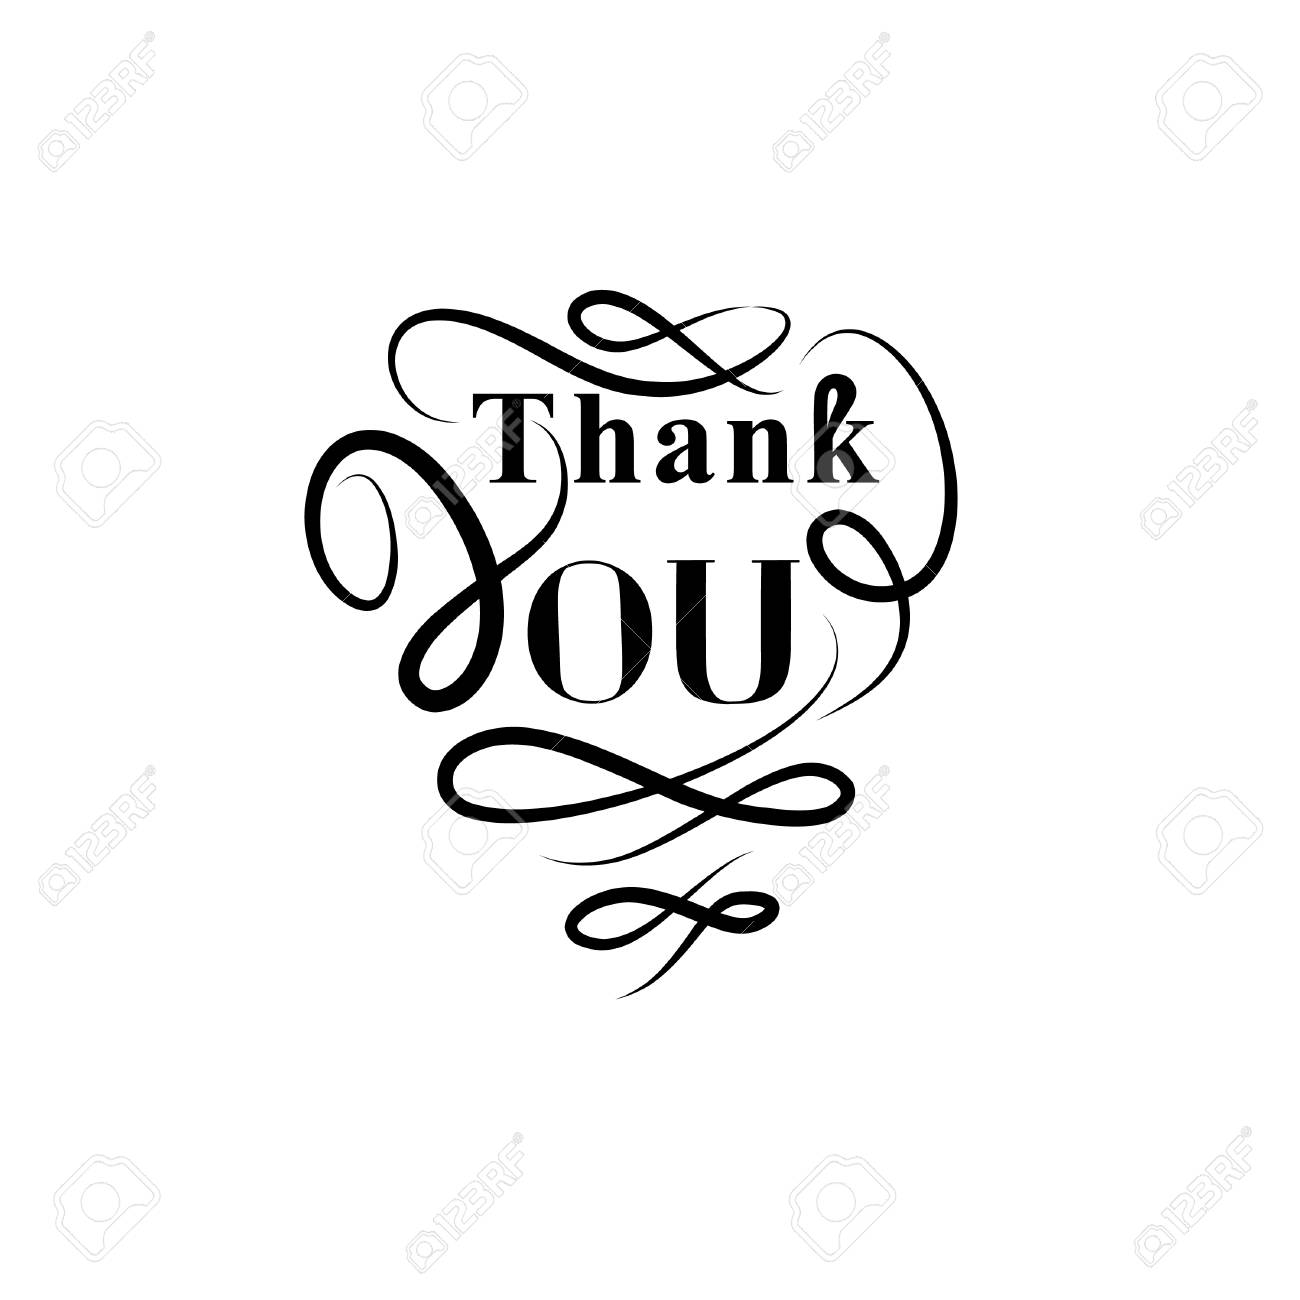 Thank You Greeting Card With Handwritten Lettering And Swirl